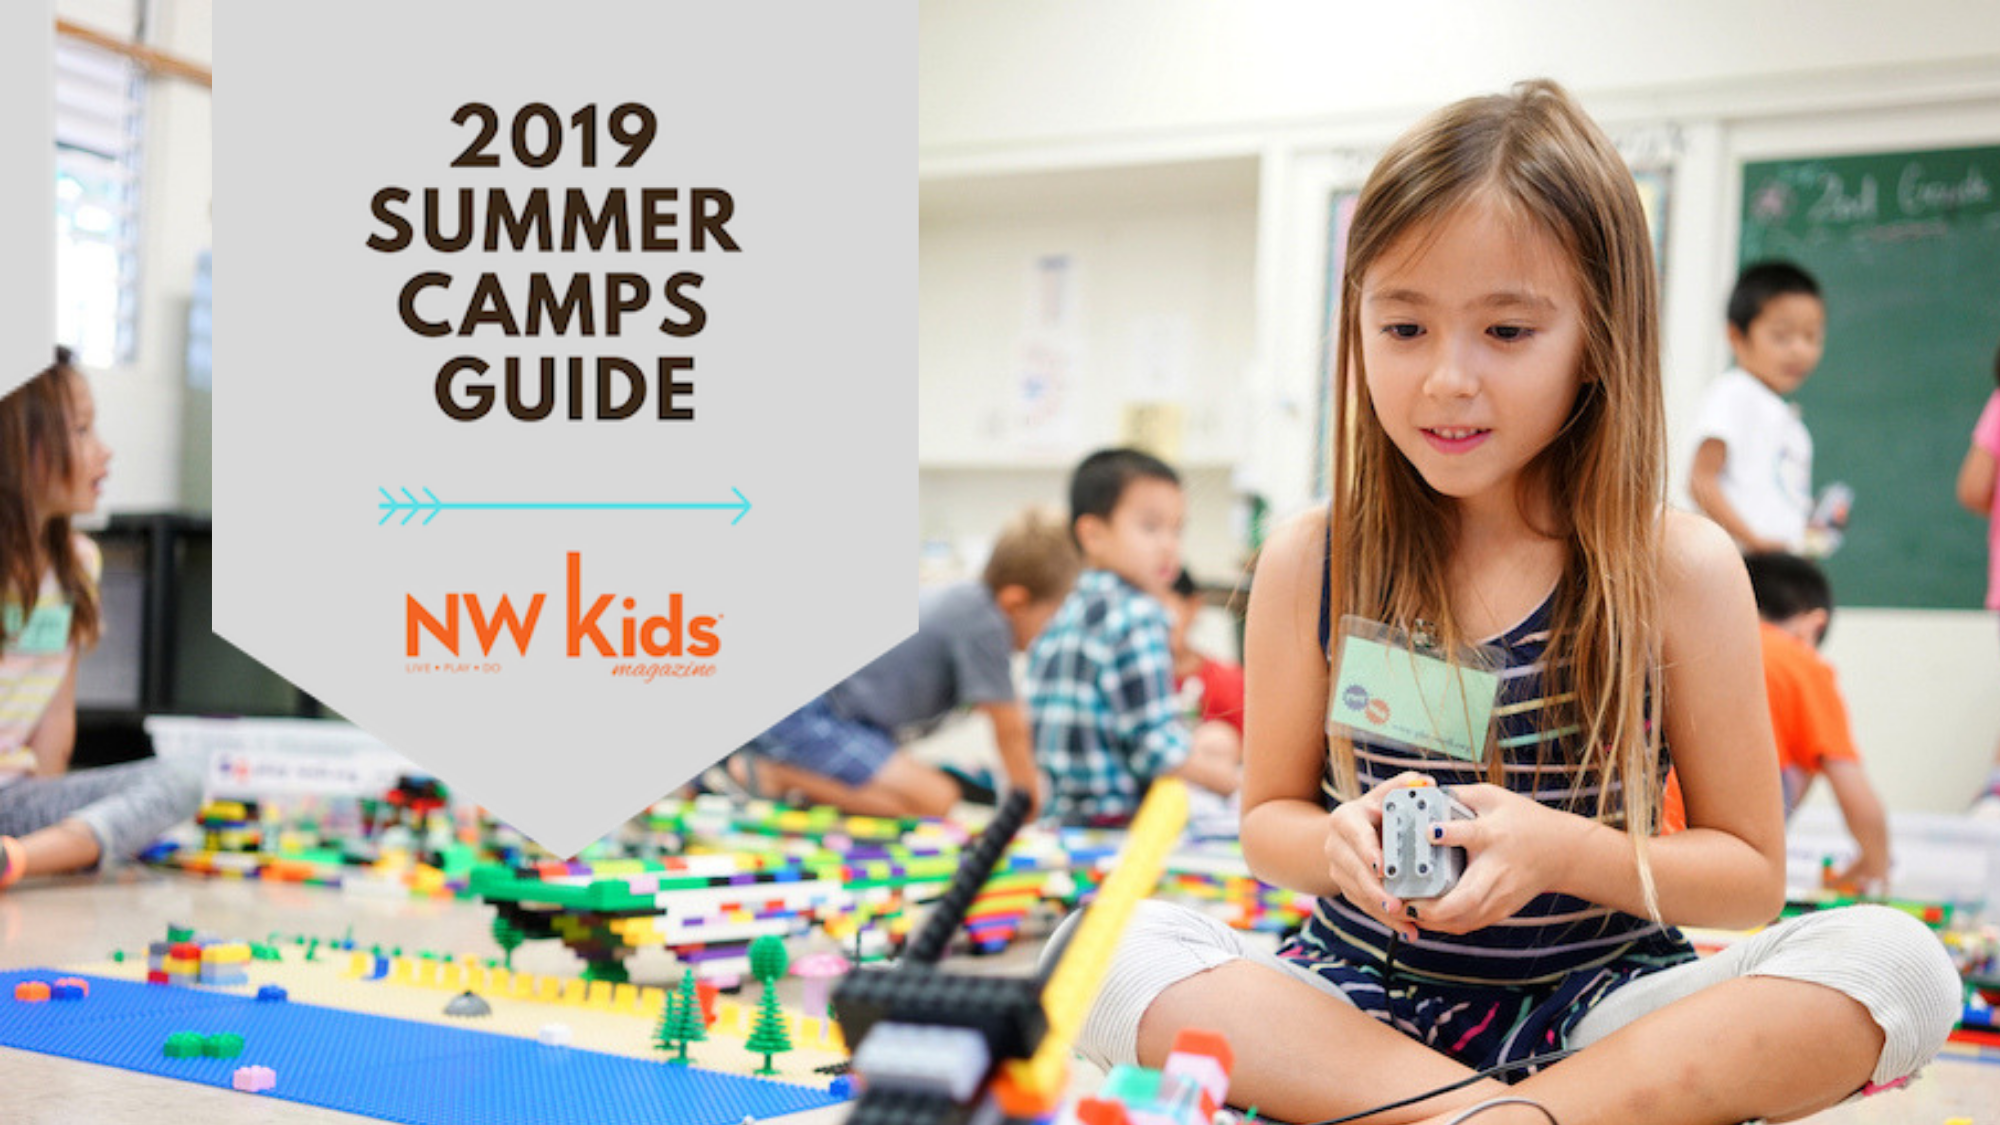 2019 Summer Camps Guide - NW Kids Magazine